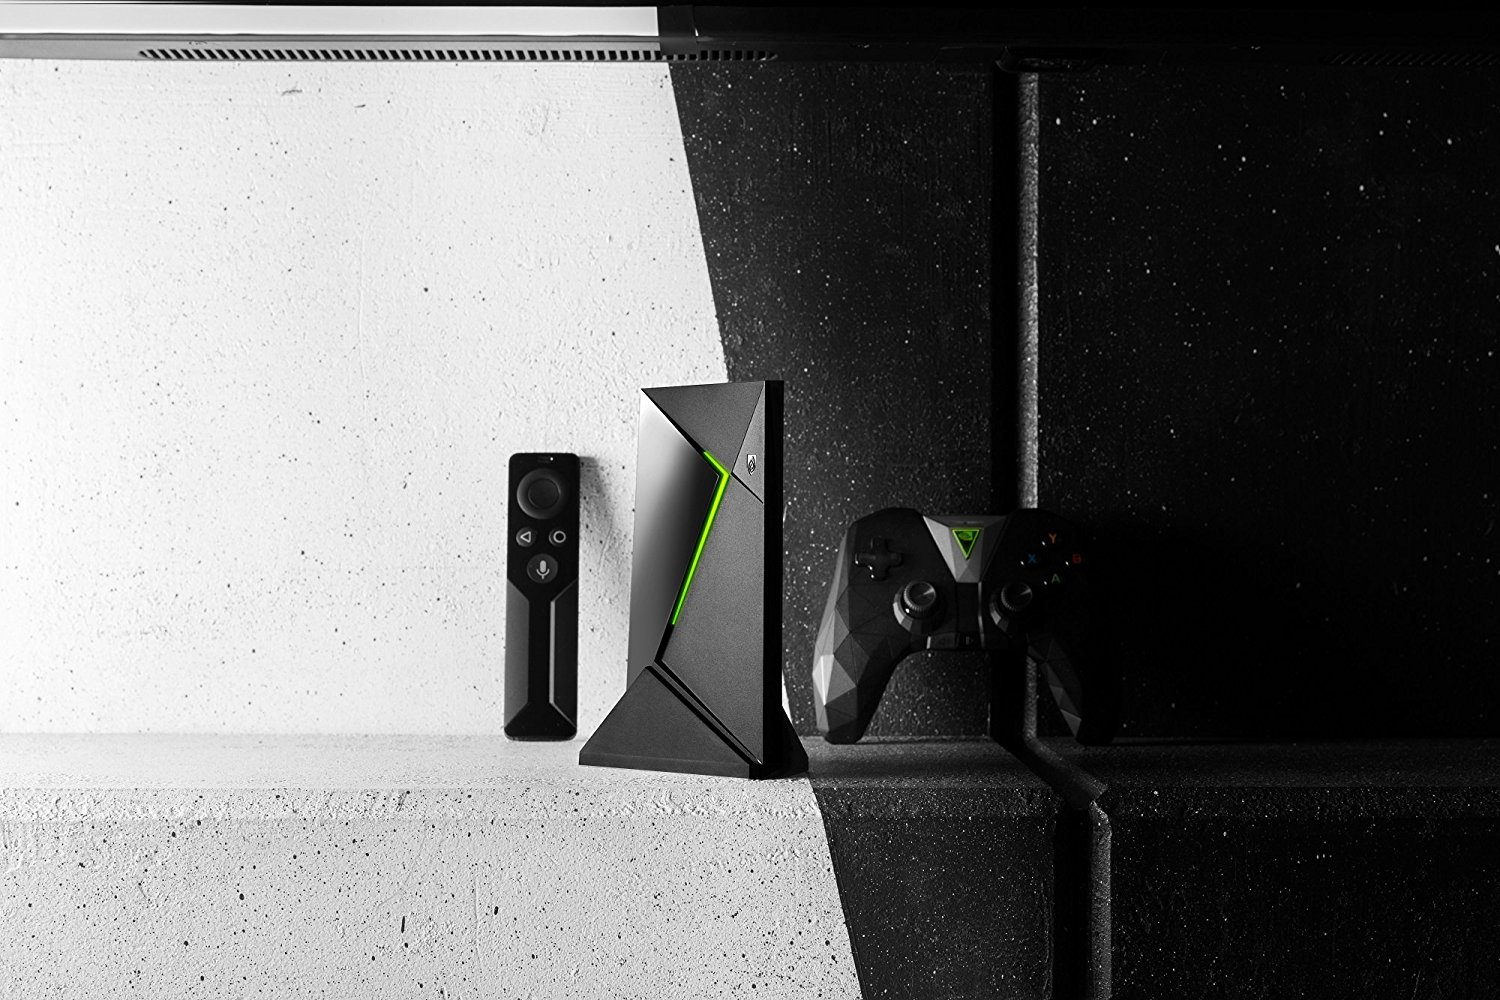 NVIDIA Shield TV 2 Accessories